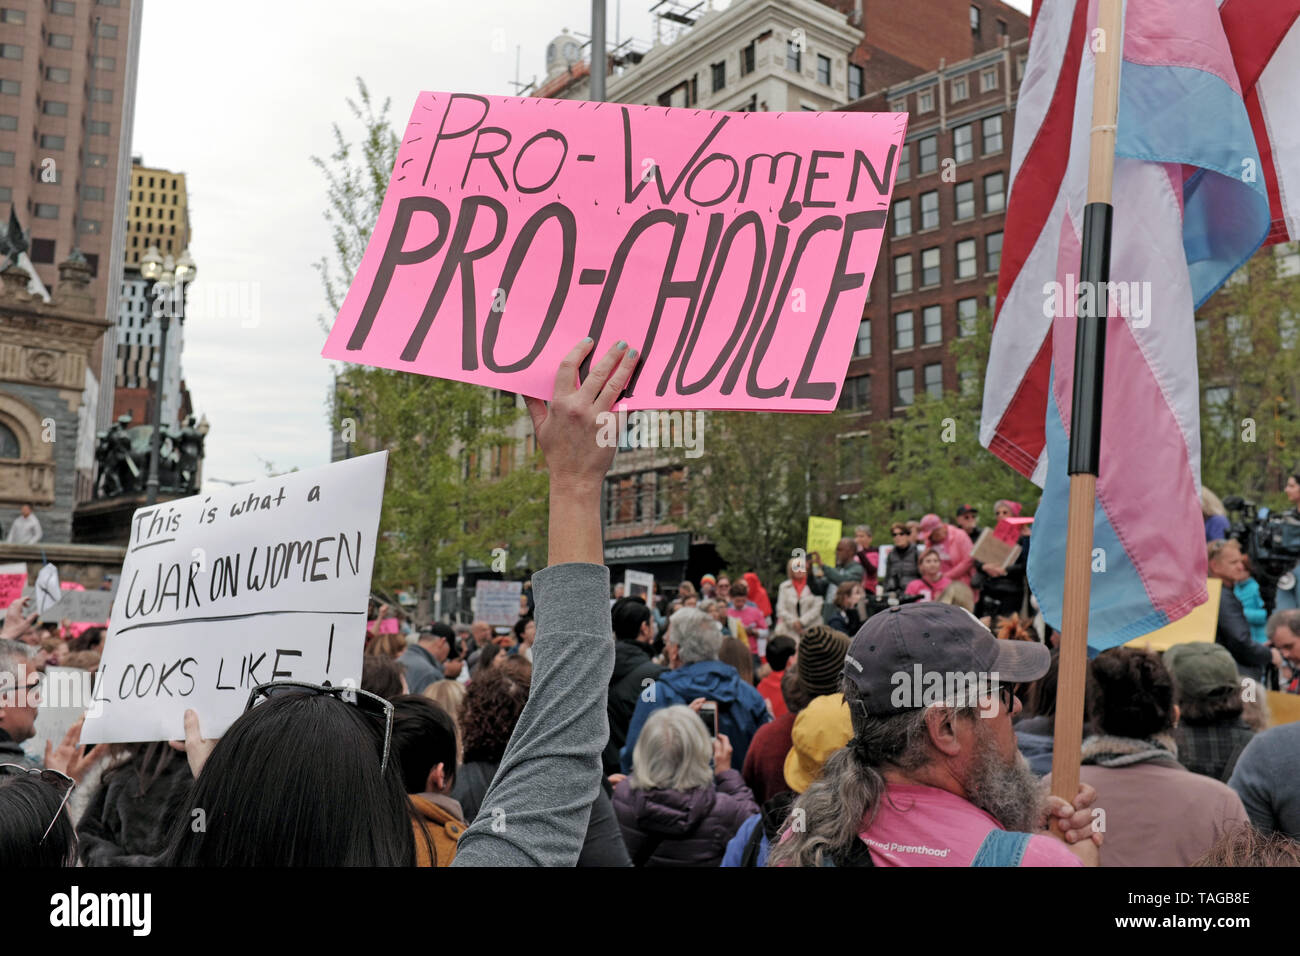 A woman holds a pro-women/pro-choice sign during a pro-choice rally protesting changes in Ohio abortion laws threatening reproductive rights of women. Stock Photo